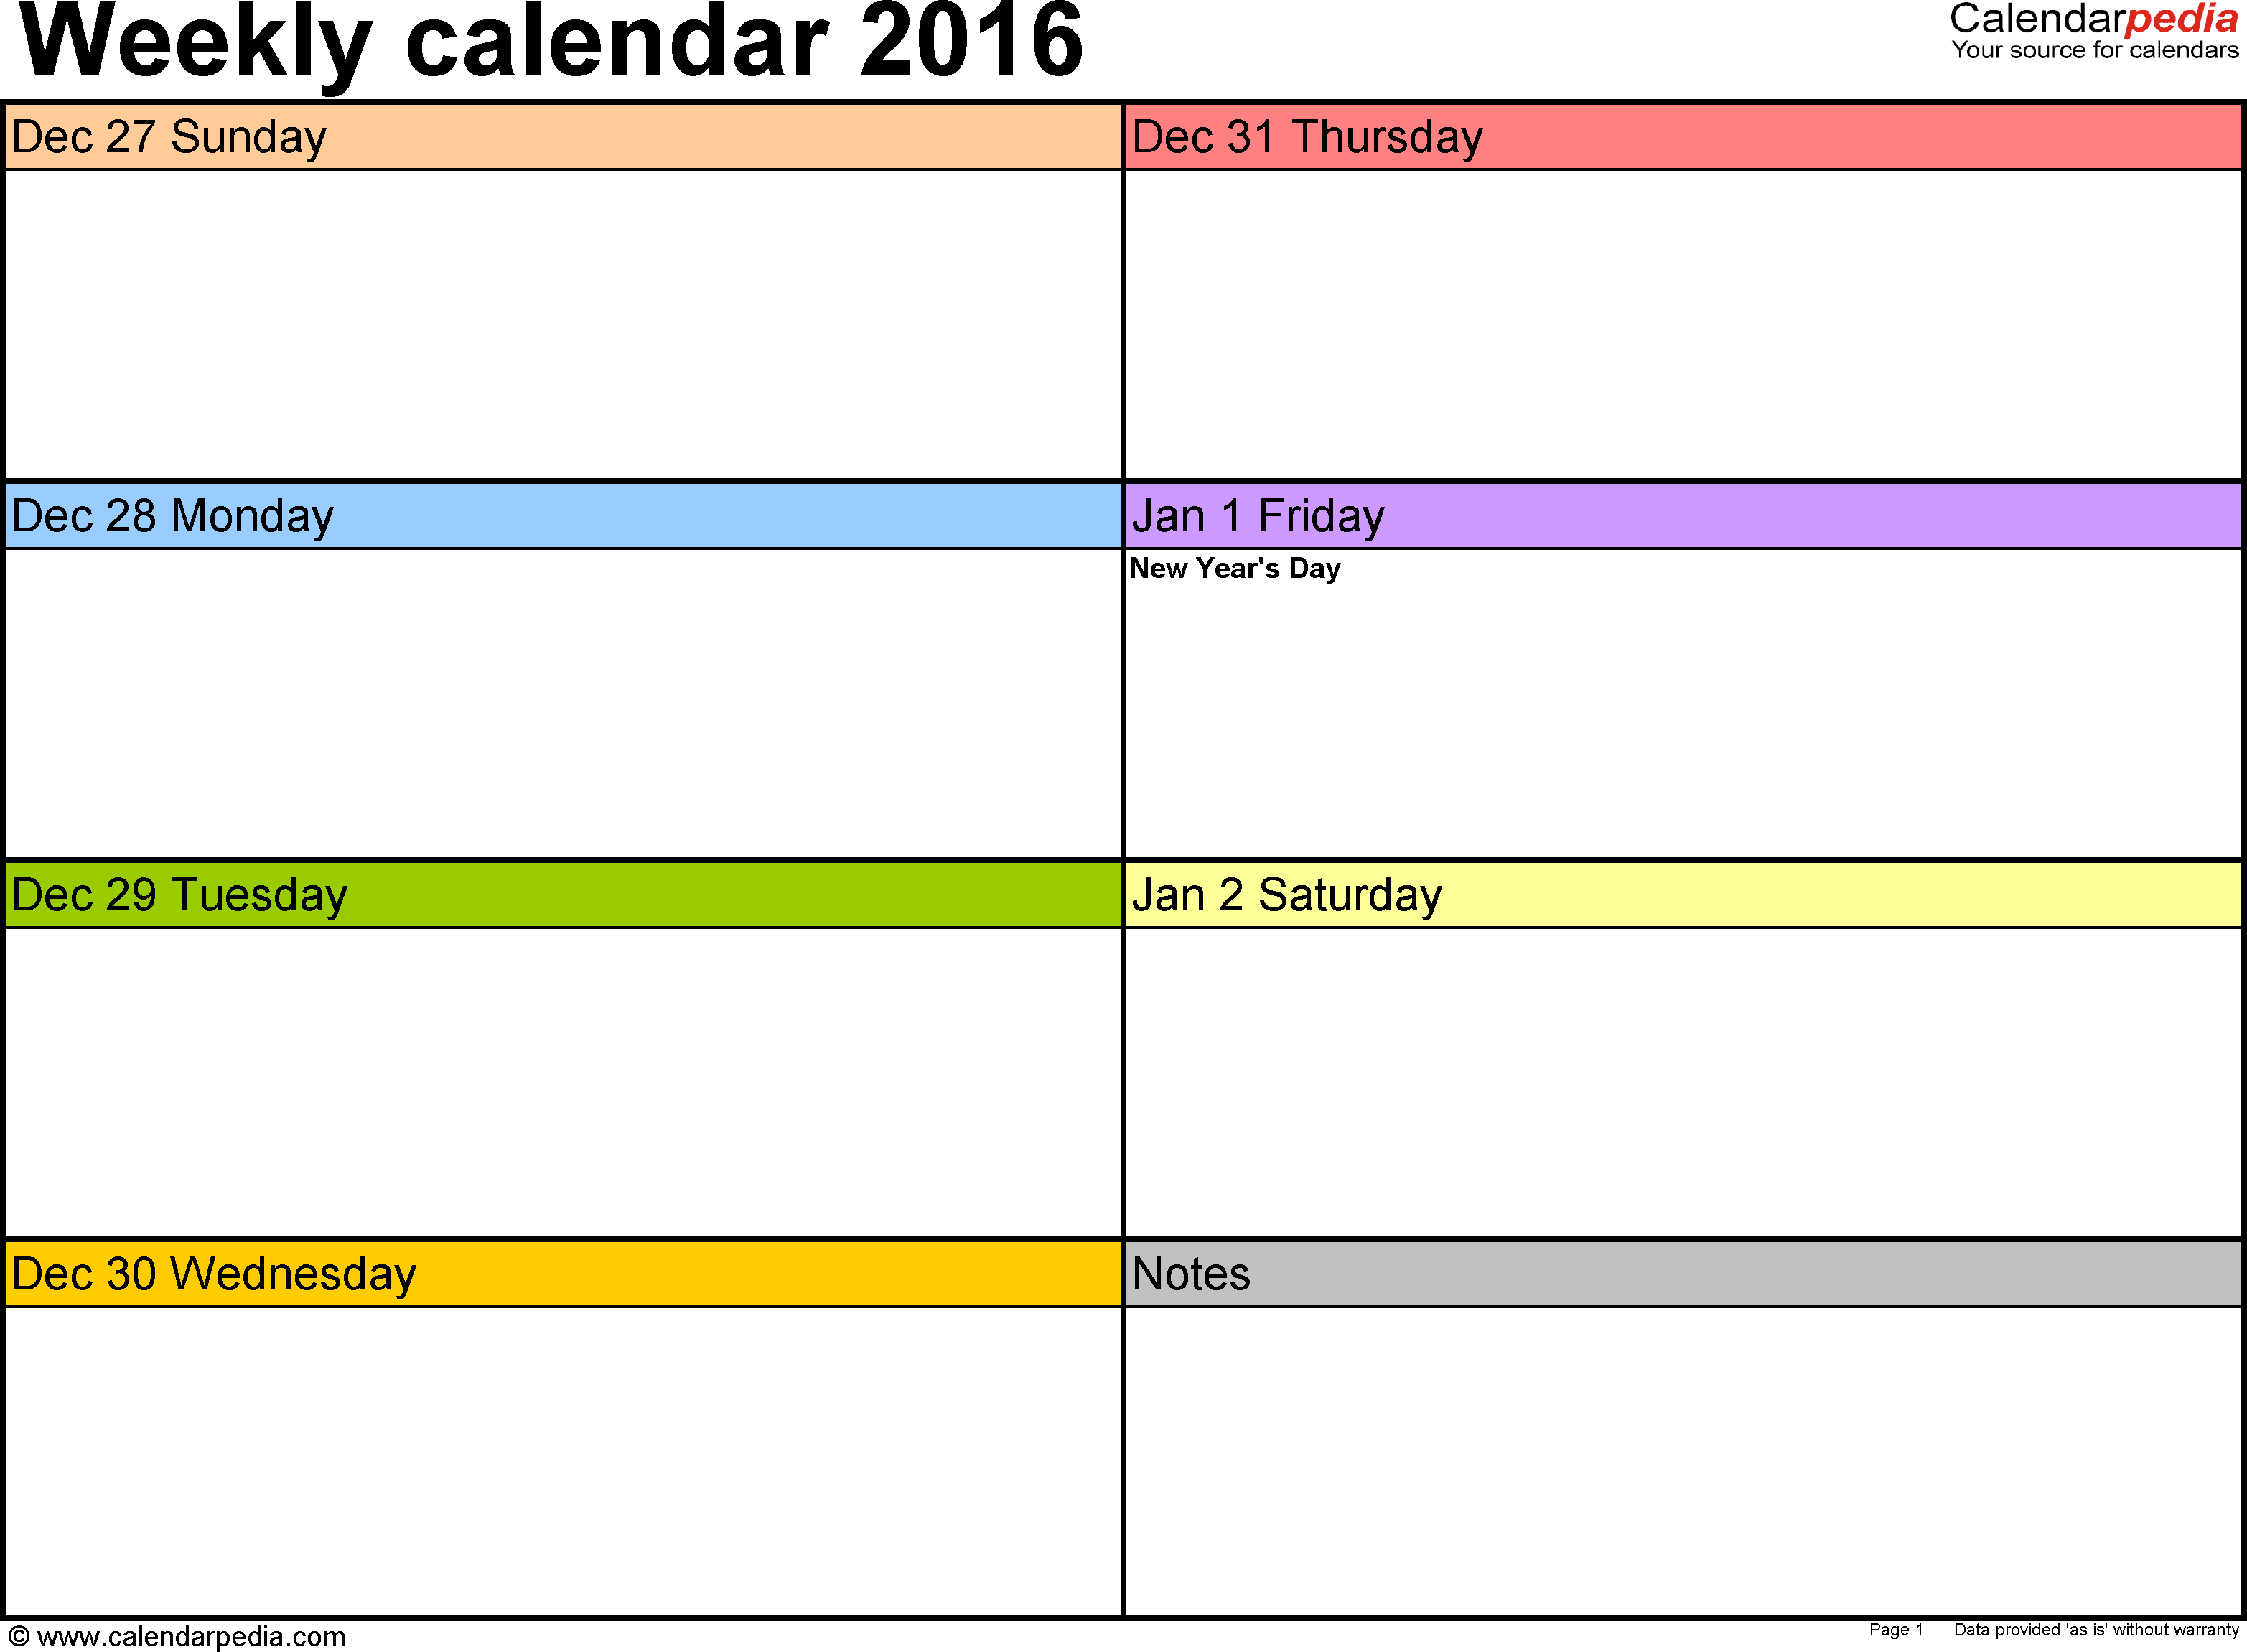 Weekly calendar 2016 for pdf 12 free printable templates for Day plan template for teachers